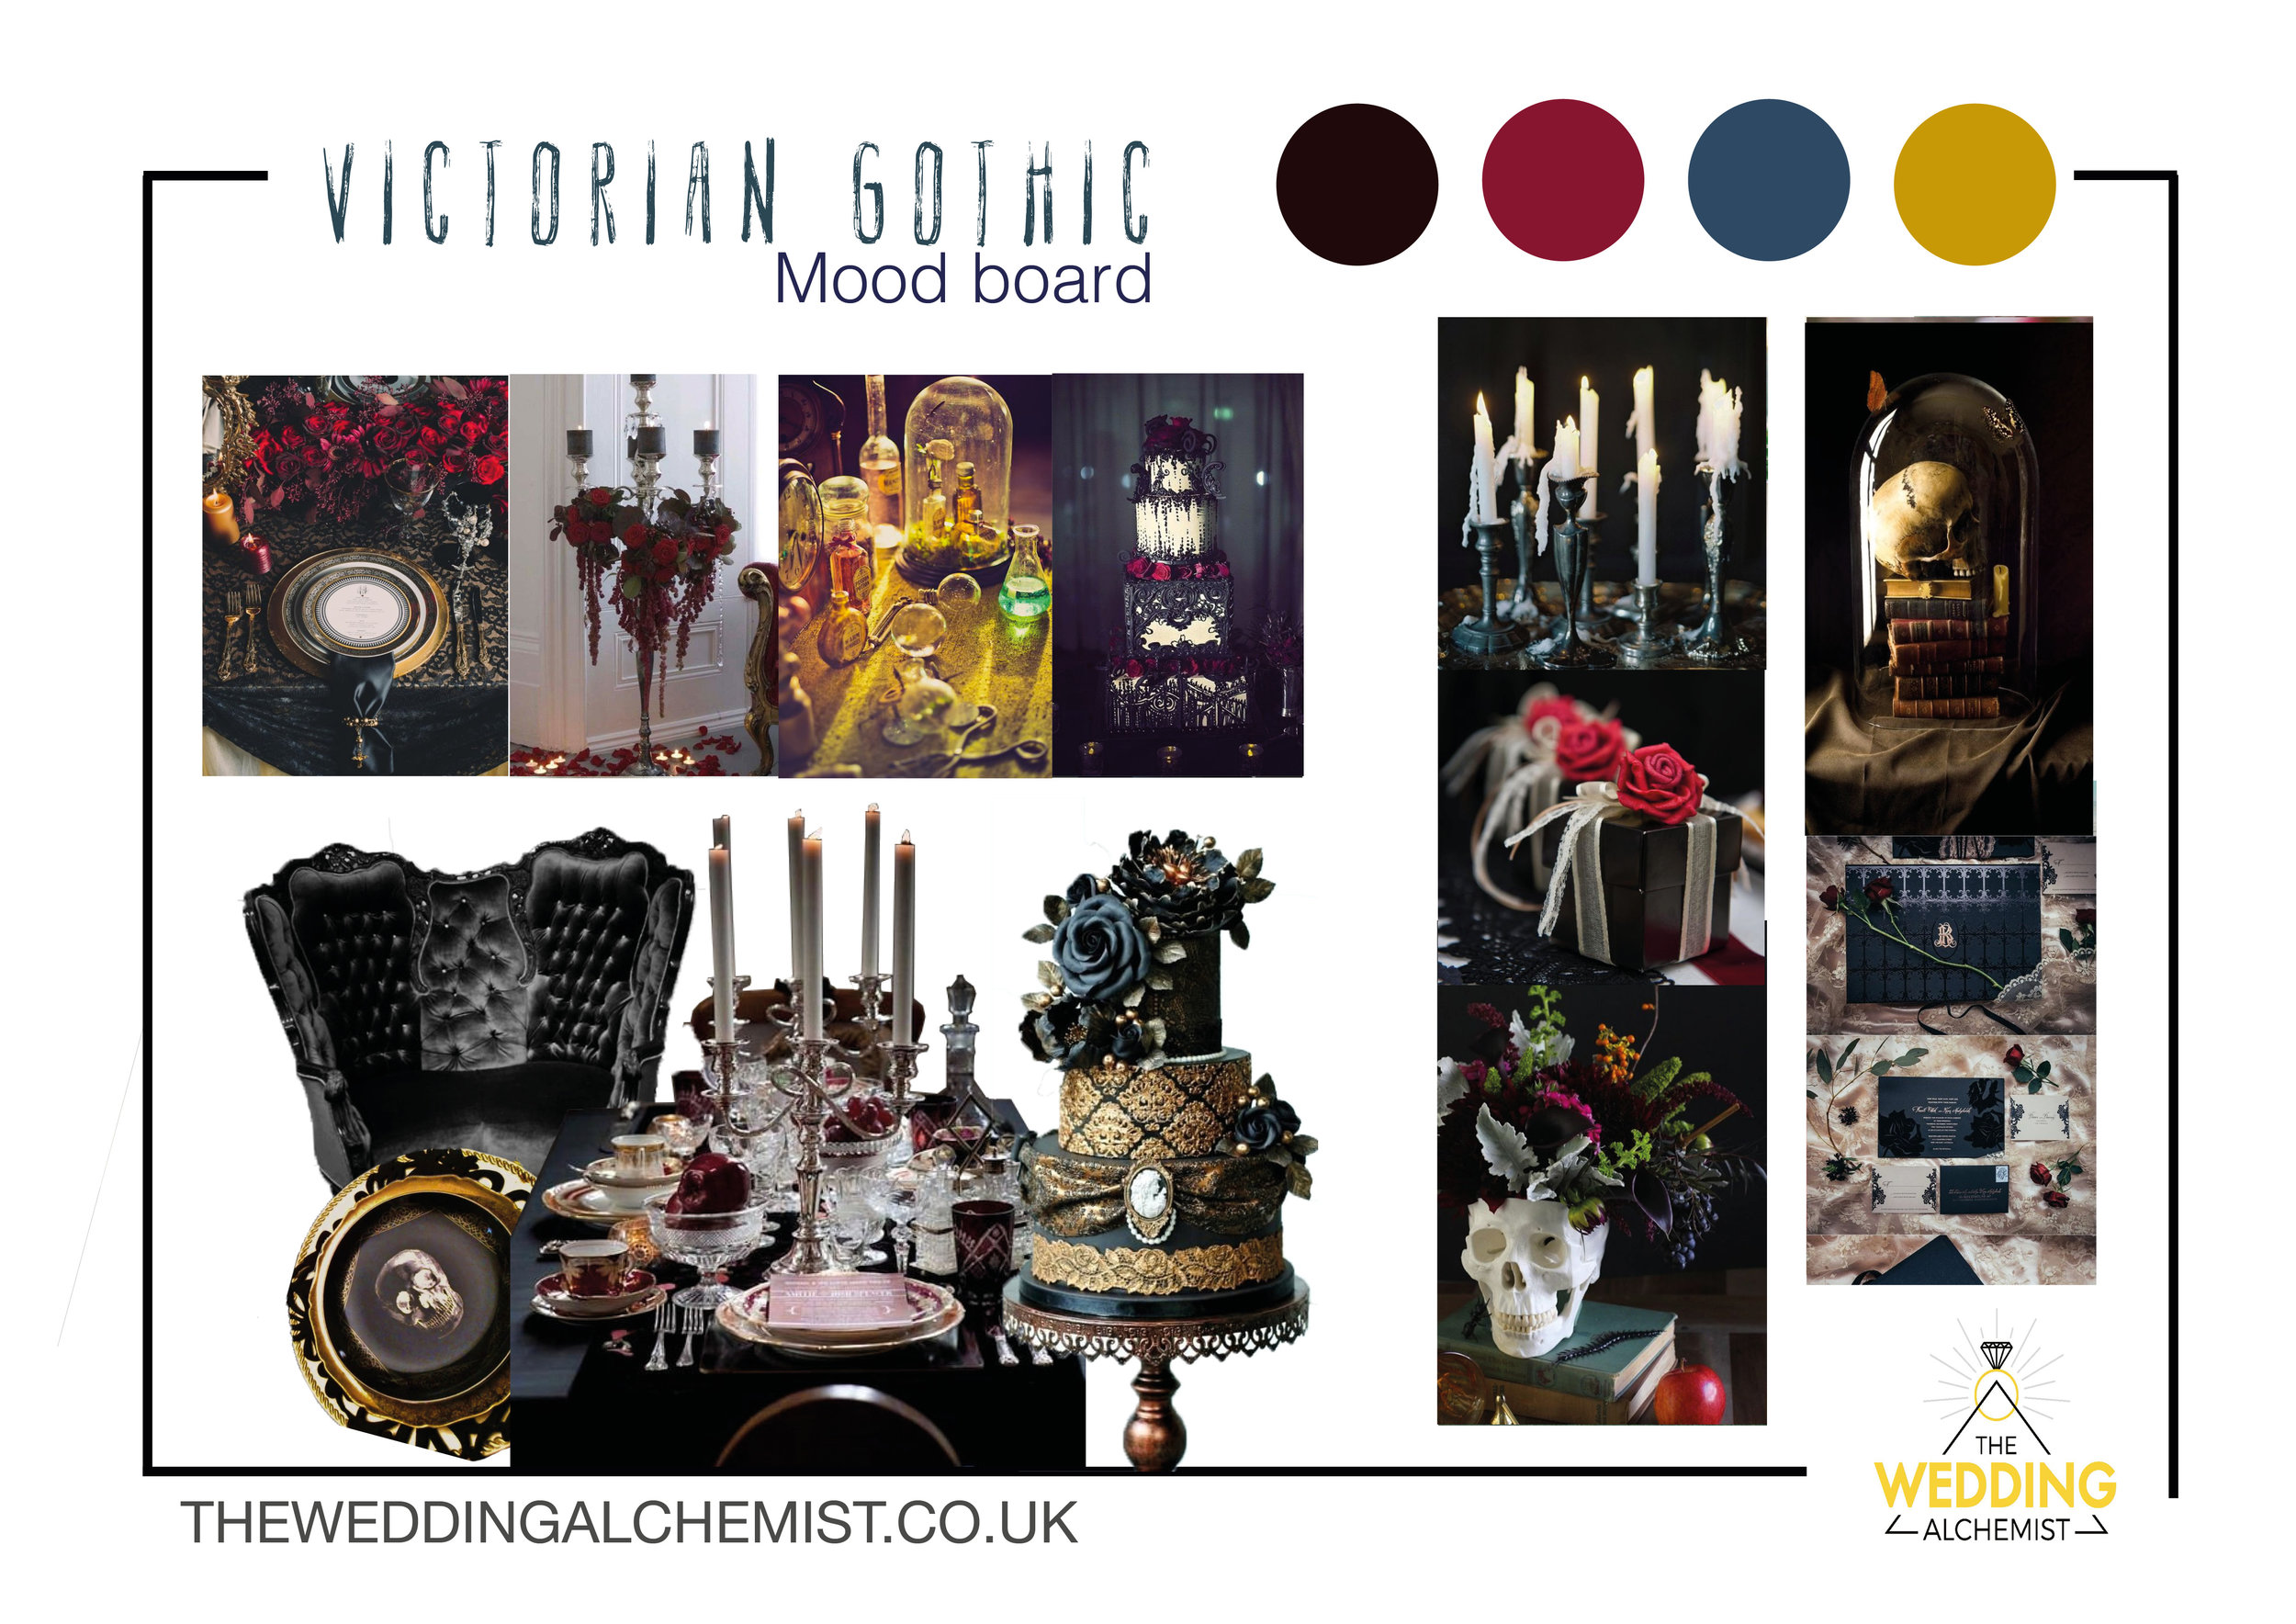 Victorian Gothic Weddings - A dark, moody yet luxe style with layering of beautiful decorative elements.